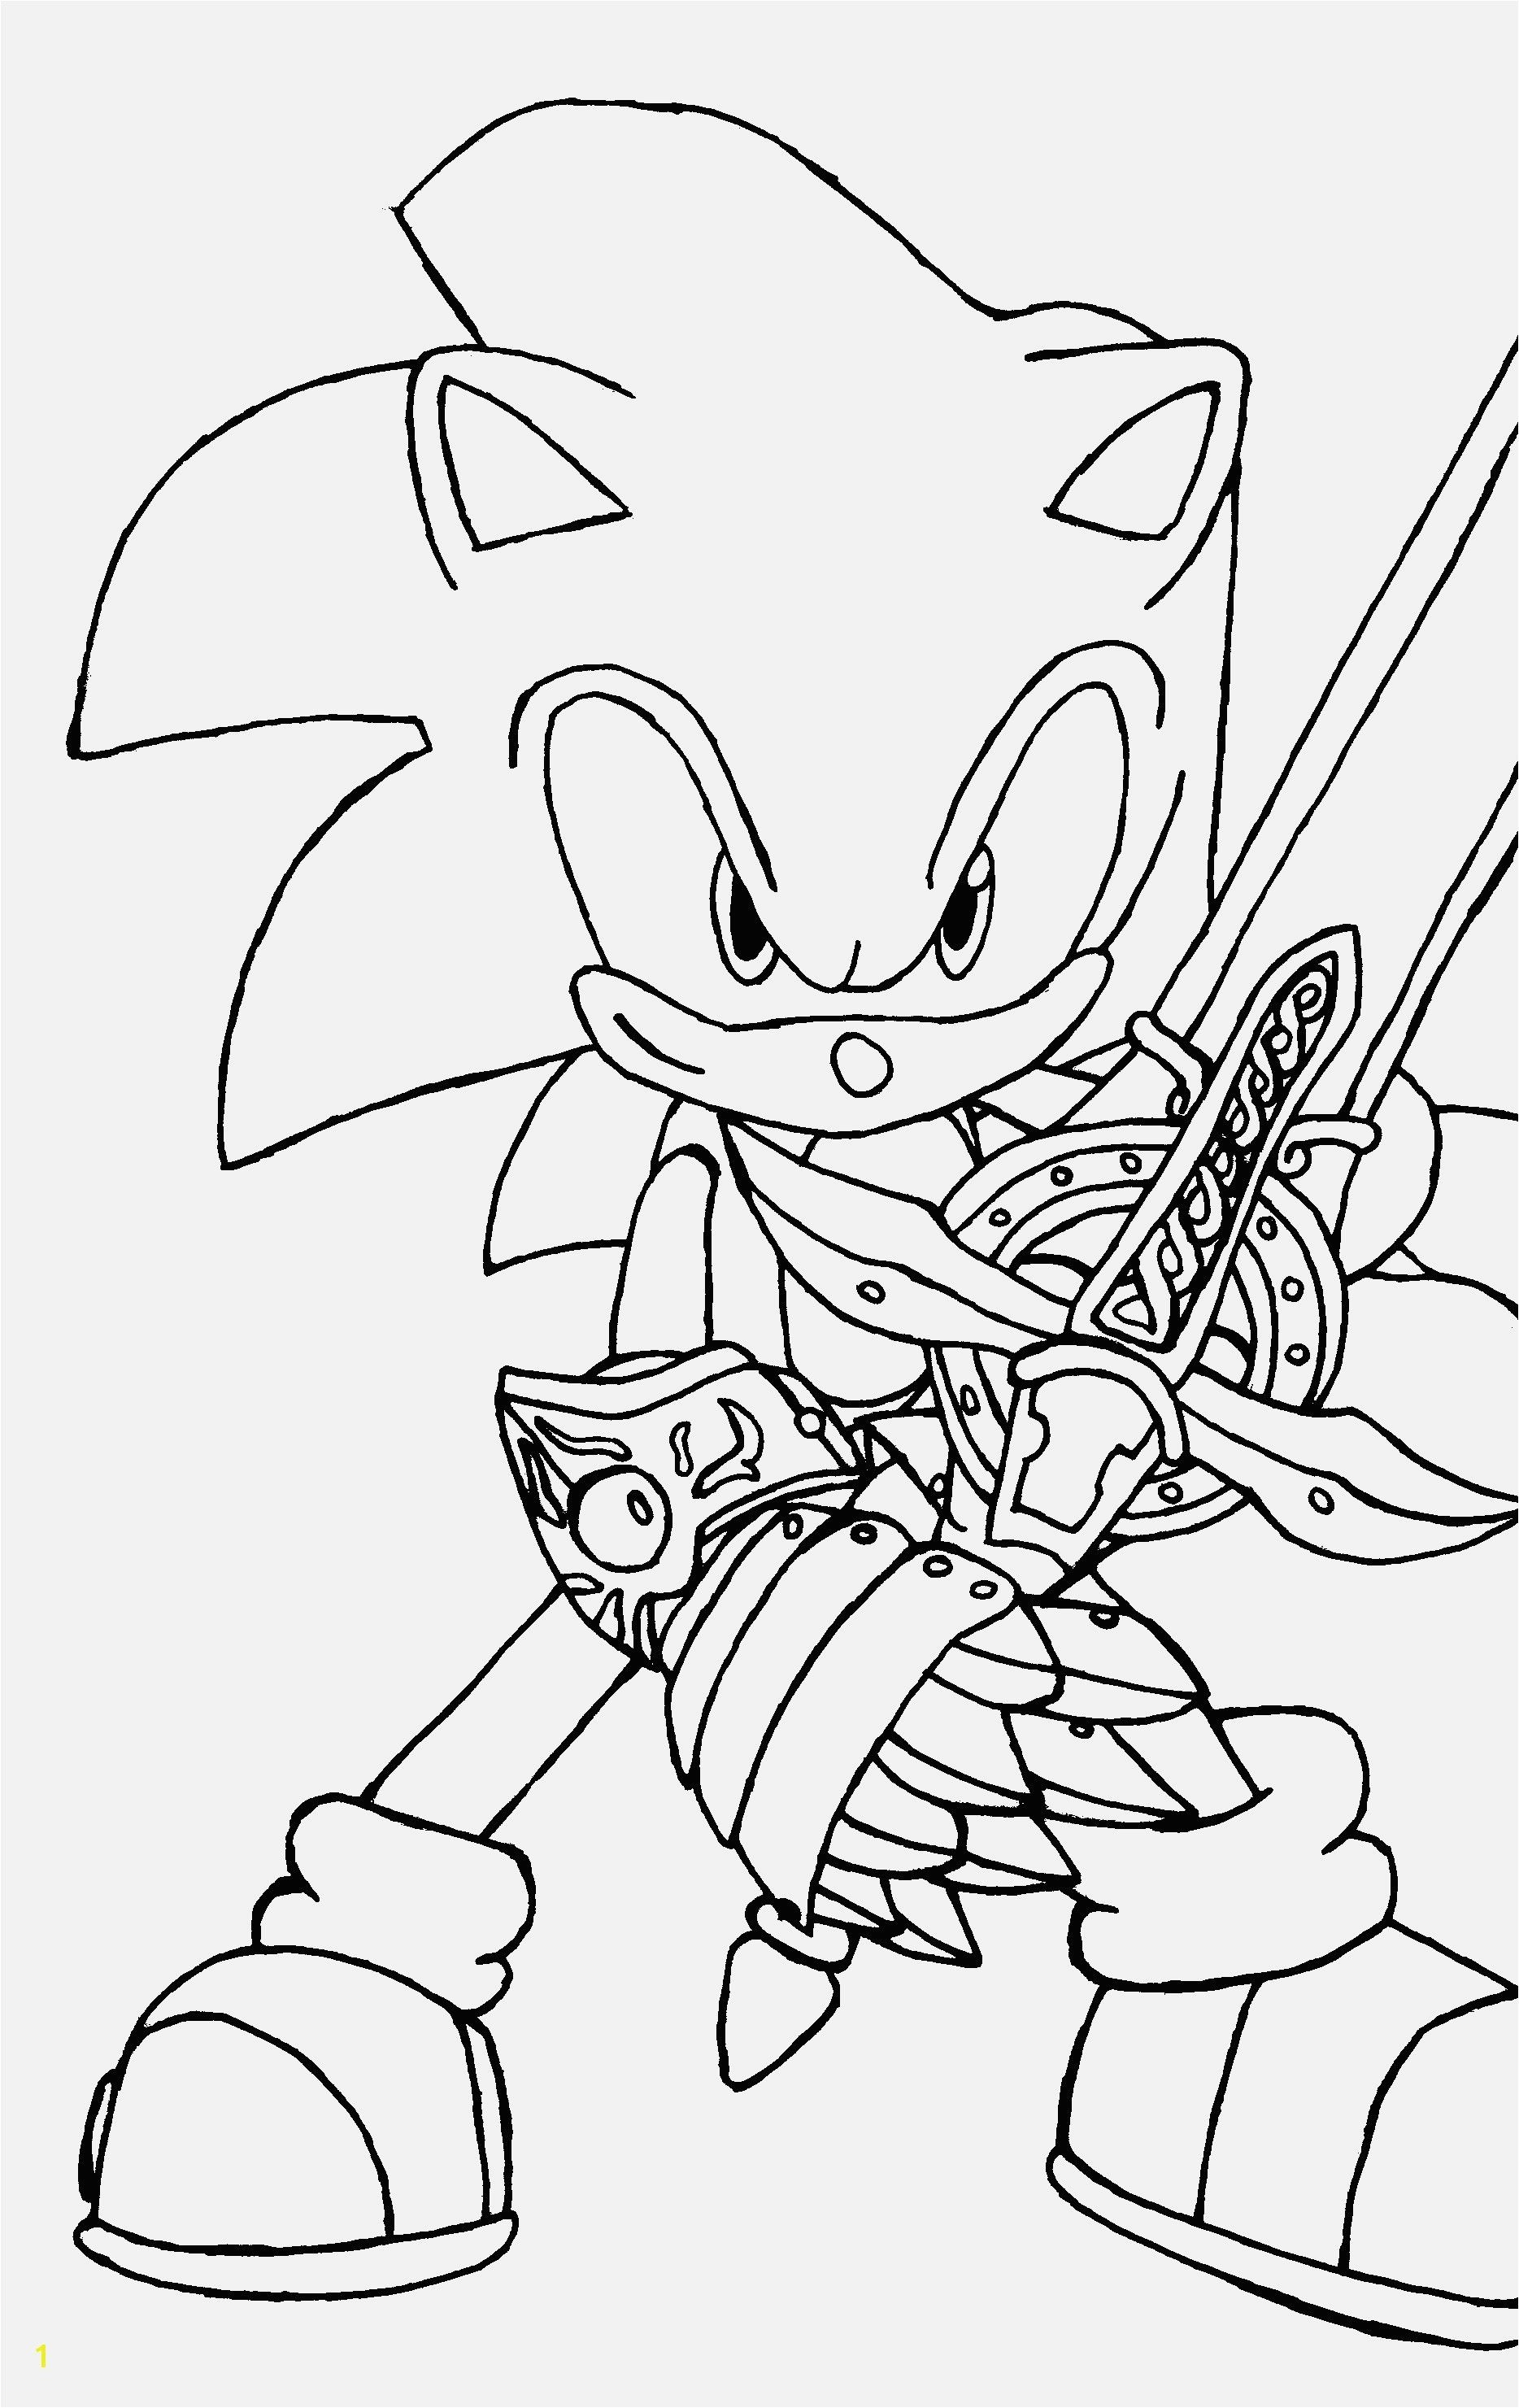 Sonic Black Knight Coloring Pages Sonic Black Knight Coloring Pages Coloriage Sonic Coloriage Pokemon Coloriage Pokemon A Imprimer